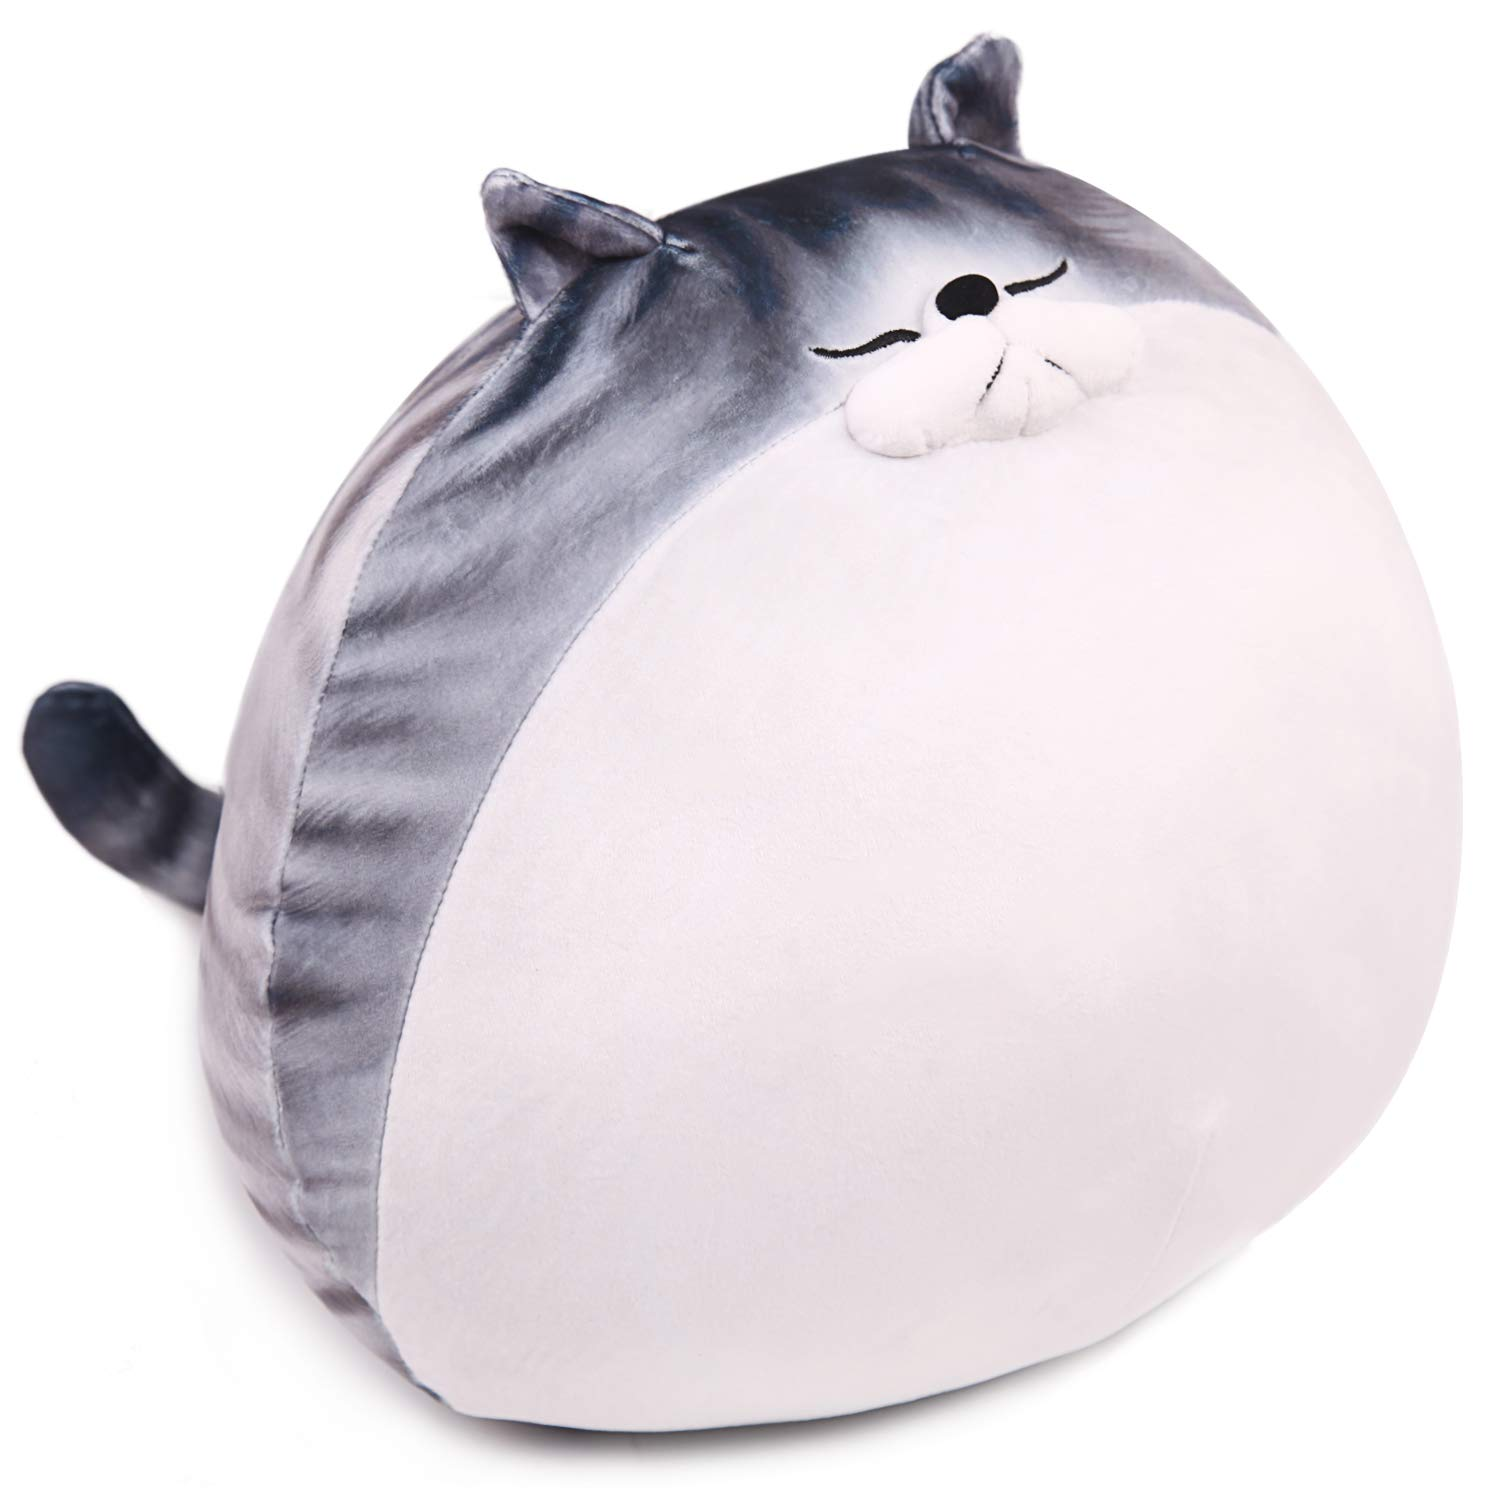 ARELUX Cute Chubby Cat Fat Hugging Pillow,Stuffed Animal Plush Pillow,Kids Gifts for Birthday, Valentine, Christmas